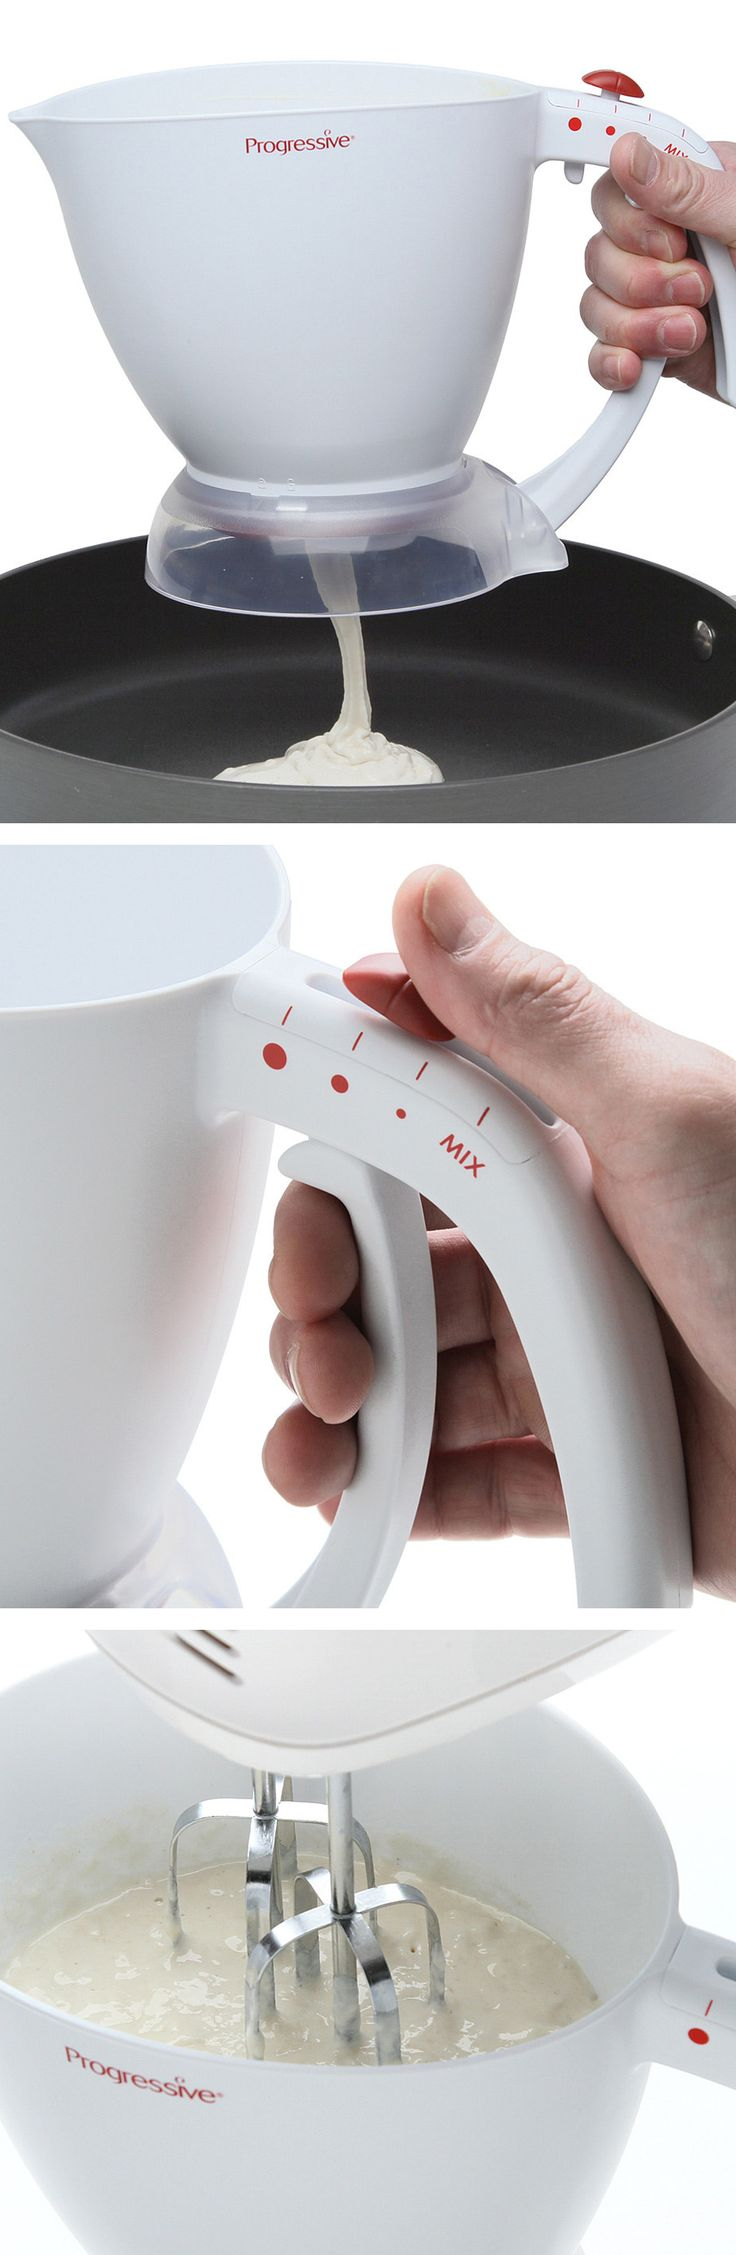 Pancake batter dispenser // beat in the jug, choose your pancake size, and release the batter! Genius! #product_design #kitchen #gadget